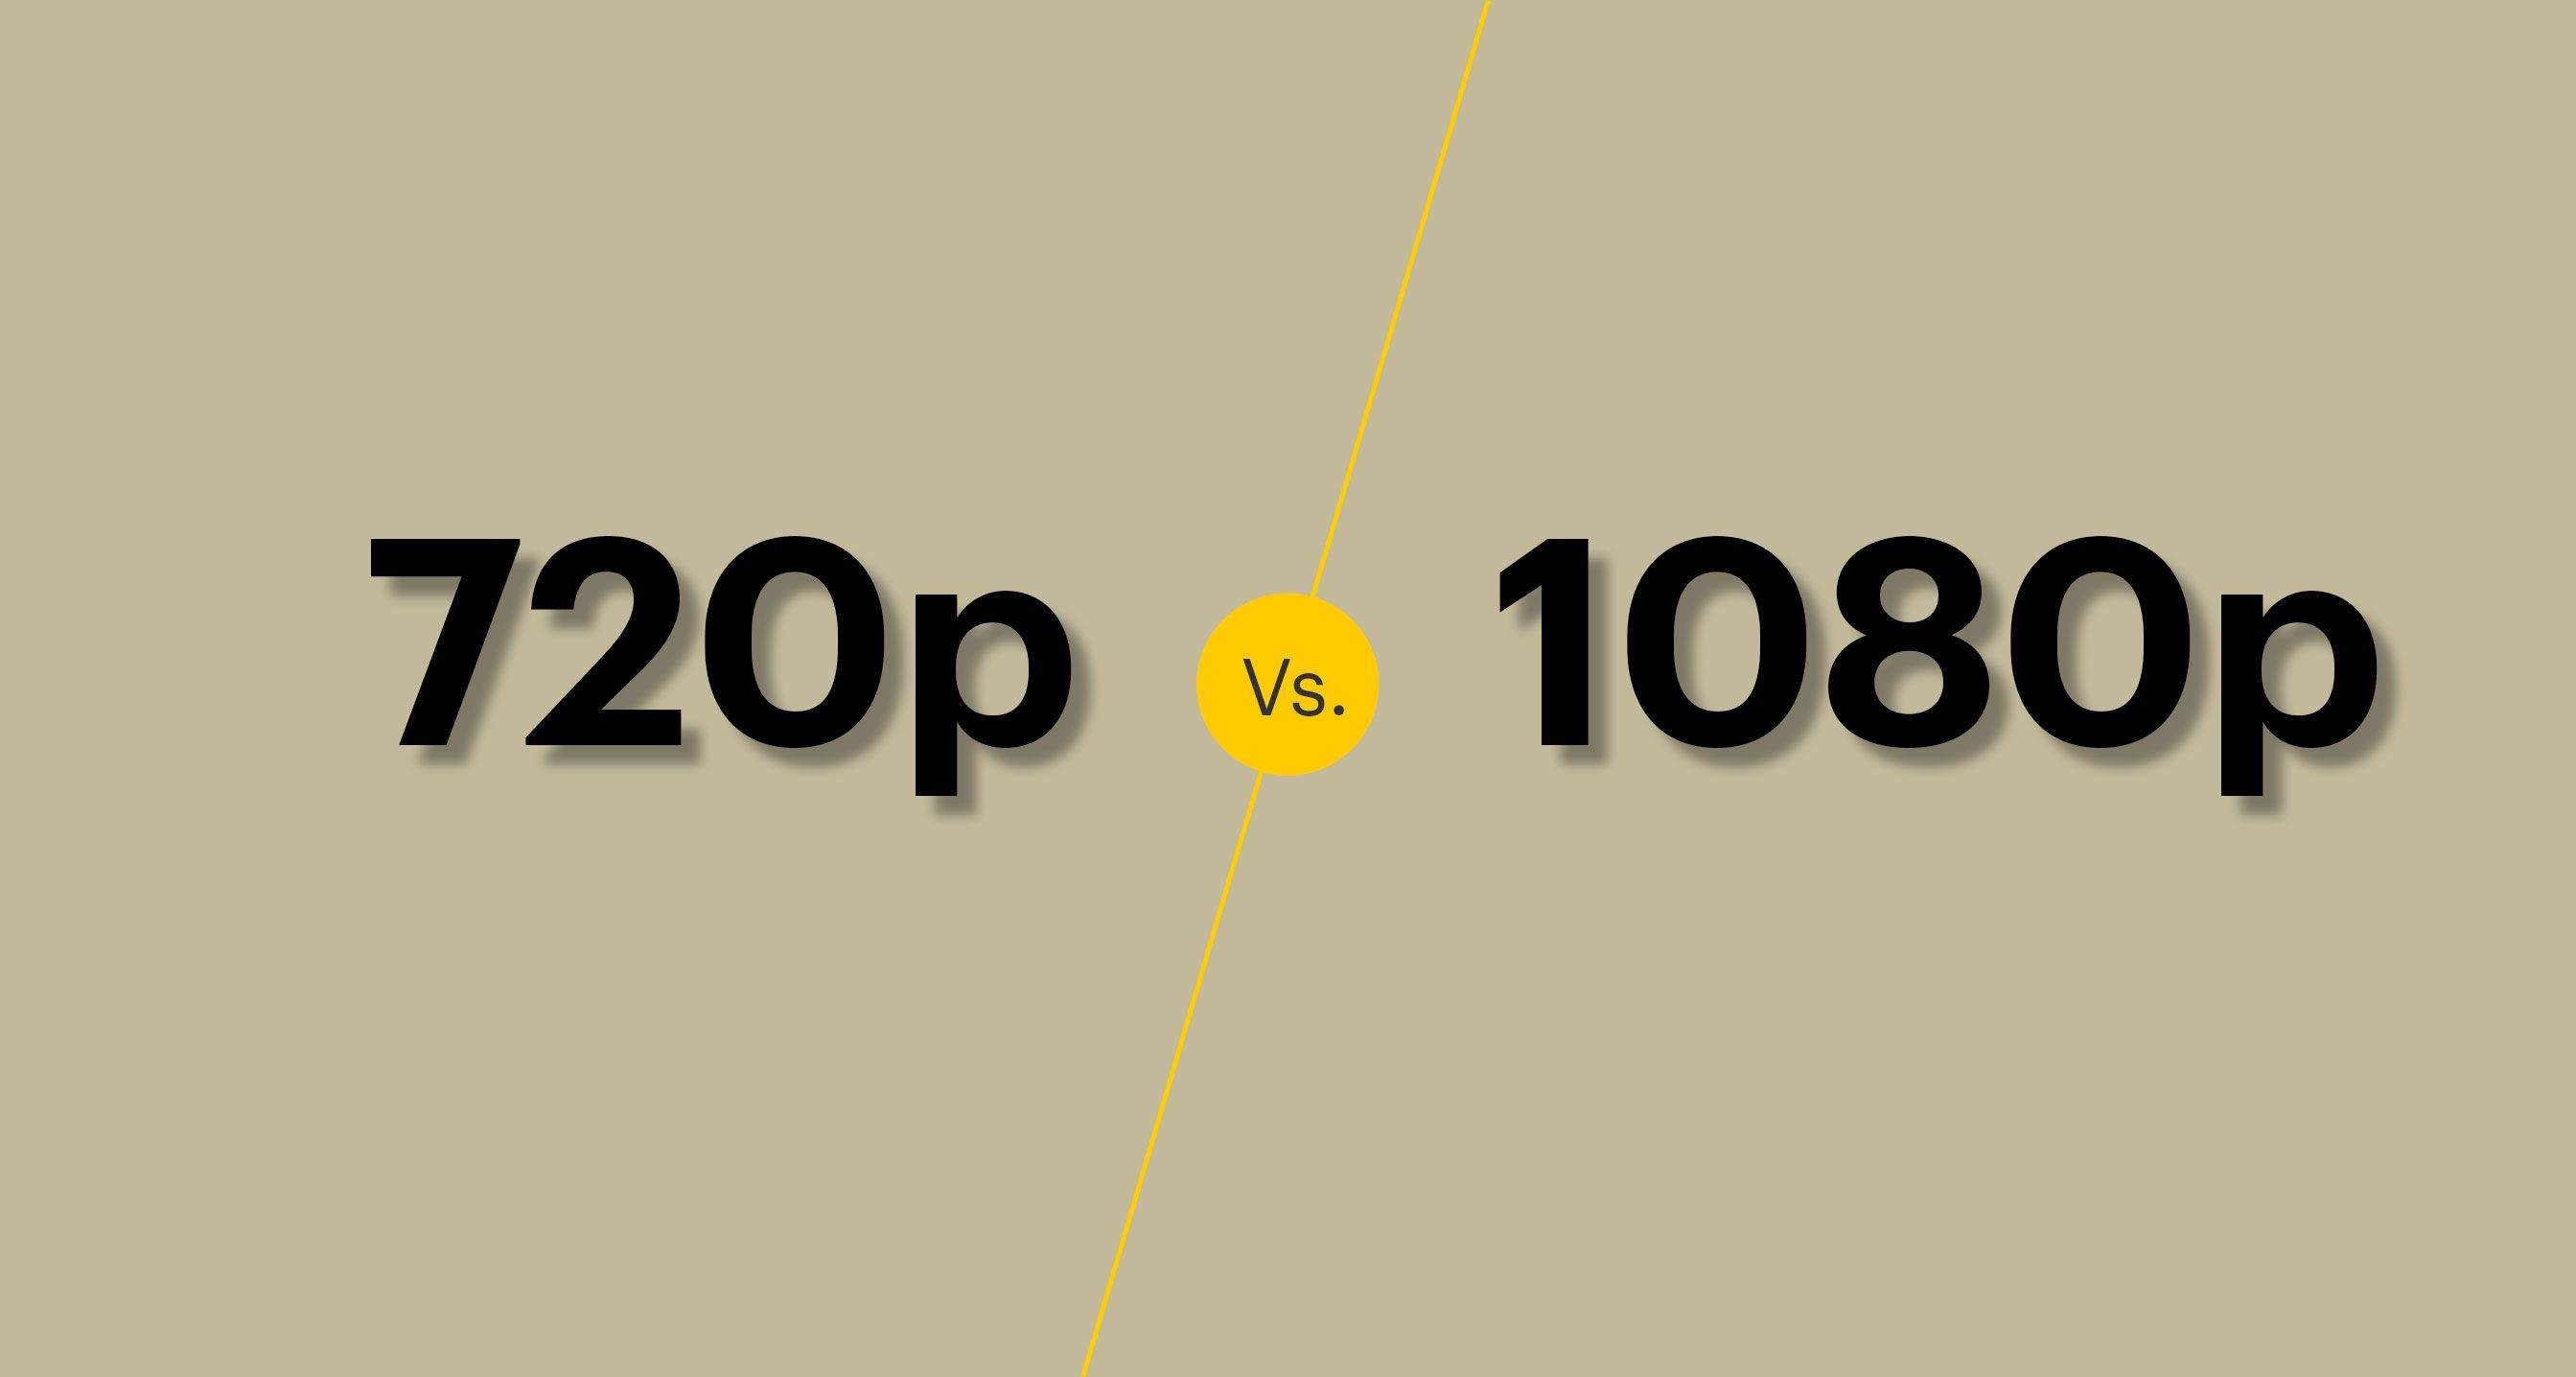 720p vs. 1080p: Can You Tell The Difference Between HDTV